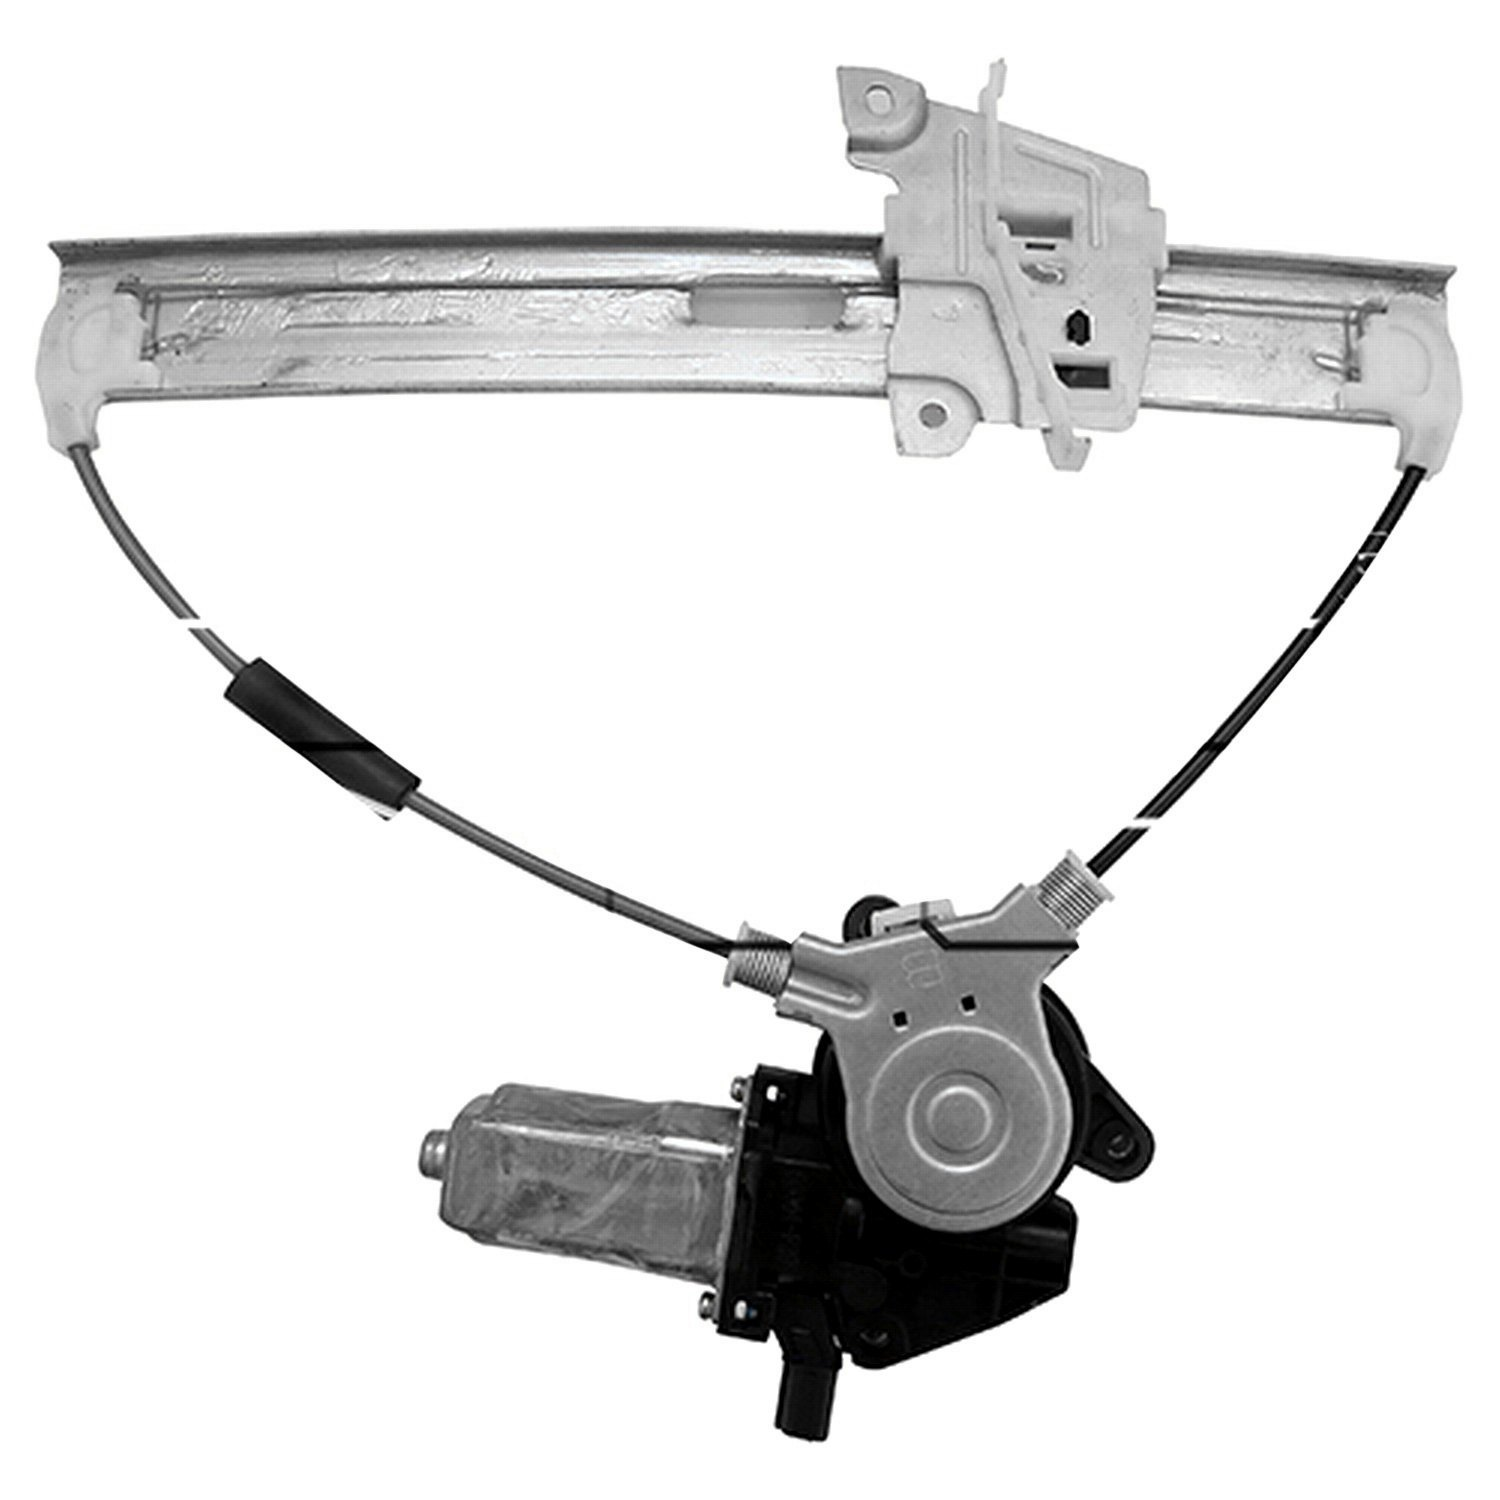 Tyc ford escape 2007 power window motor and regulator for 2002 ford explorer rear window regulator replacement